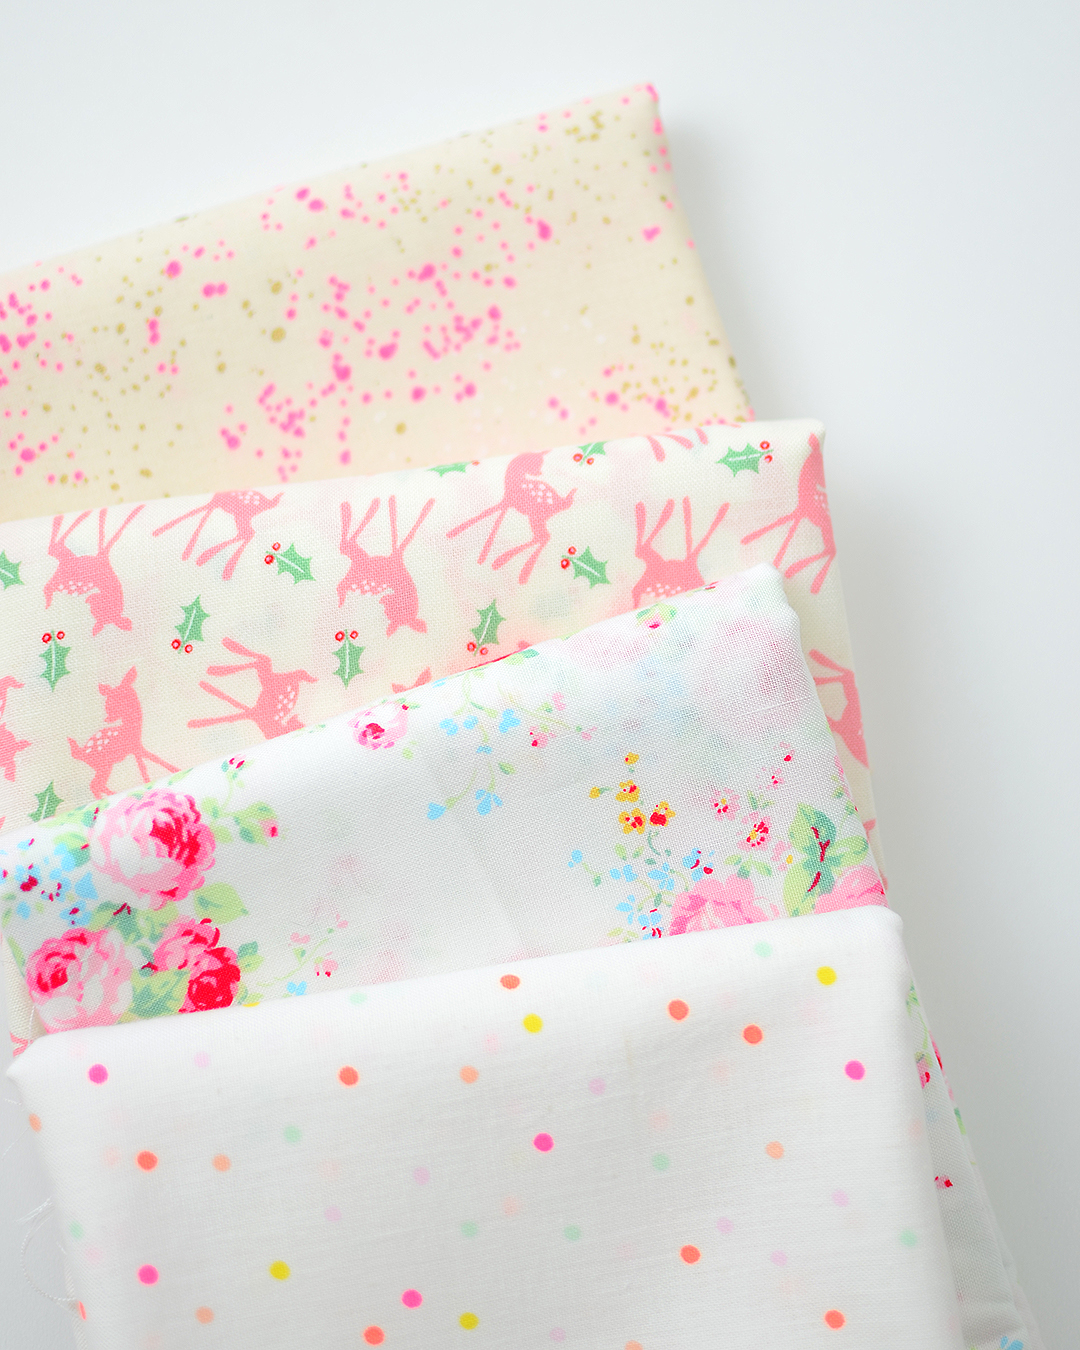 Christmas quilting fabric - Low Volume Prints